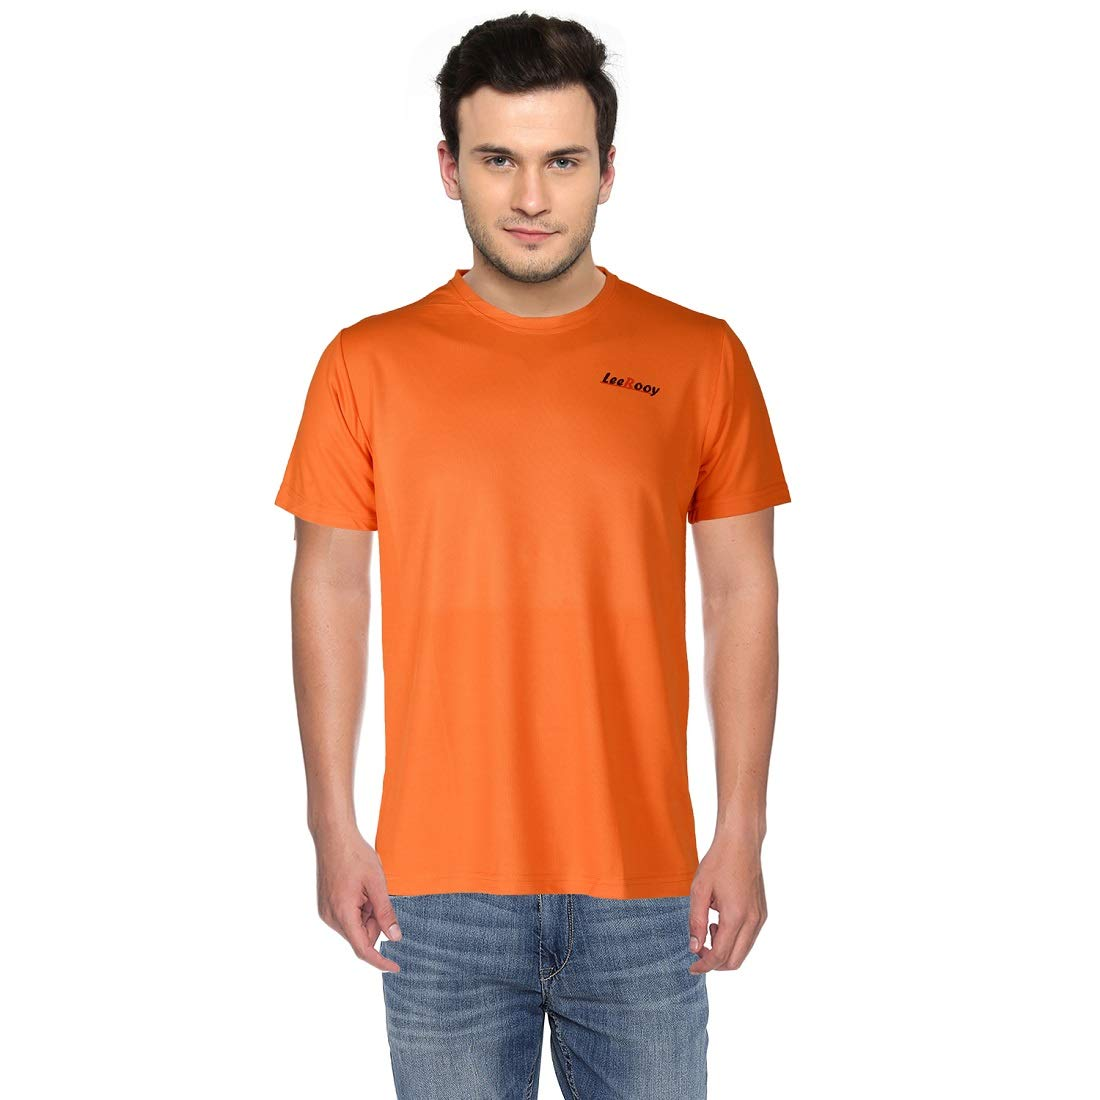 58453e47e LeeRooy Dry Fit T-Shirt-Orange: Amazon.in: Clothing & Accessories